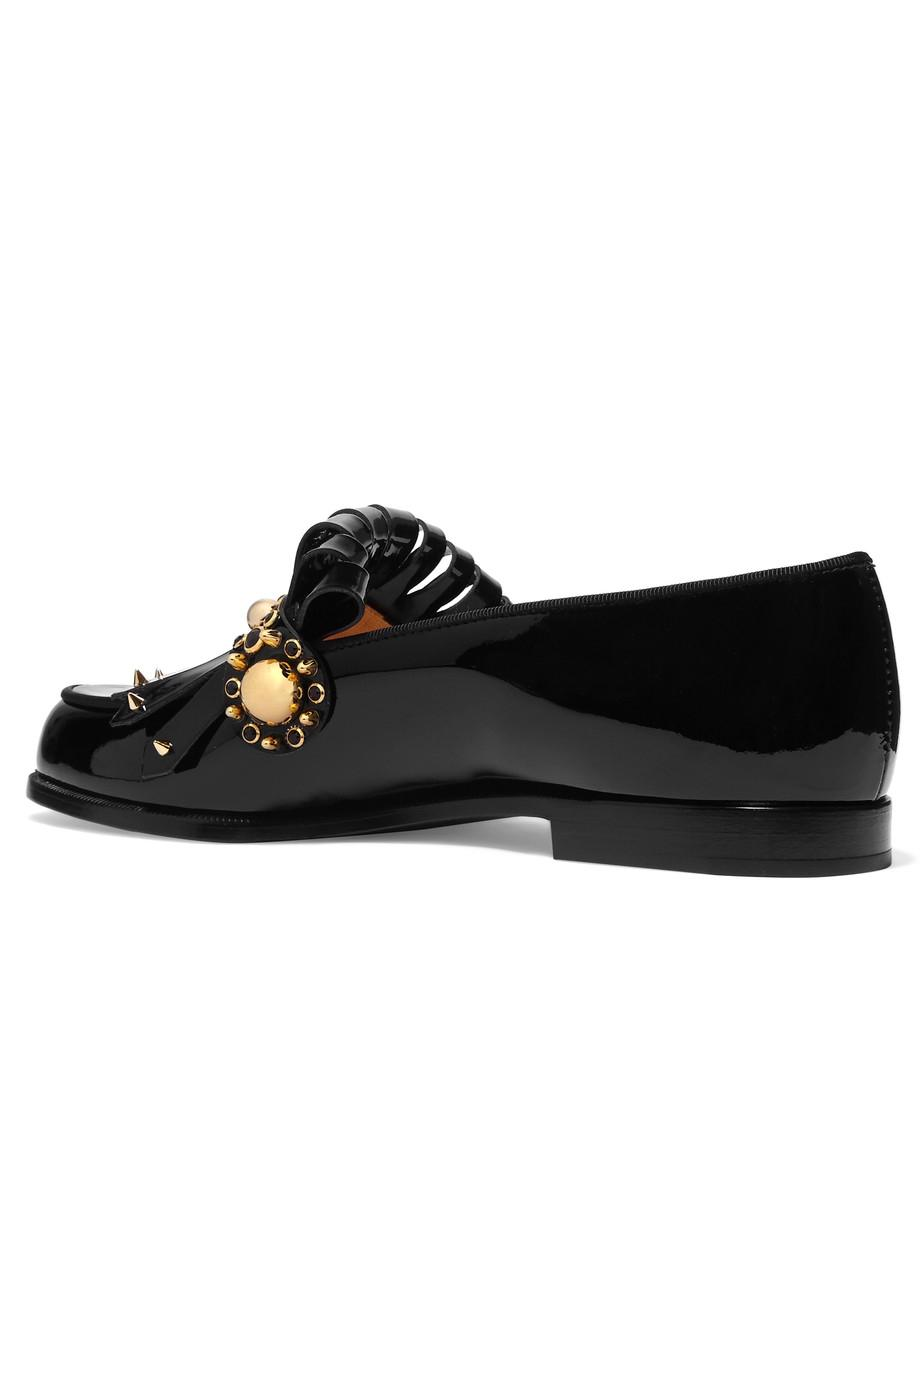 christian cuirs louboutin Noir  octave cuirs christian mocassin flats taille 11 ordinaire (m, b) 22f712